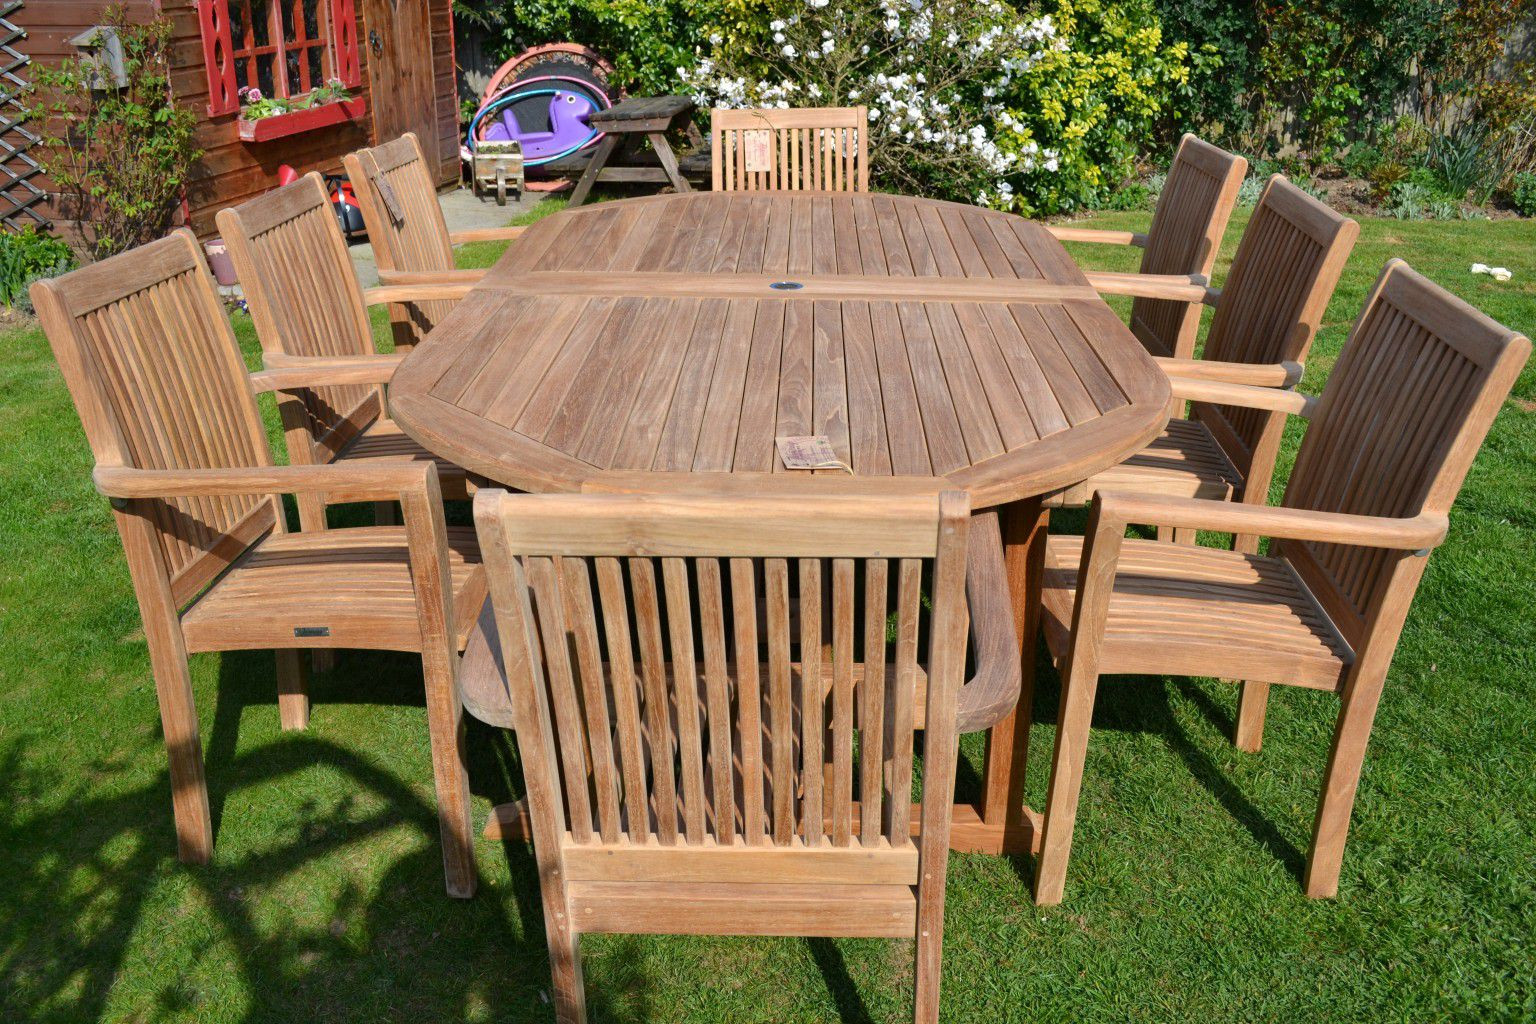 Best ideas about Wooden Patio Furniture . Save or Pin Choosing the Right Outdoor Wood Furniture Now.